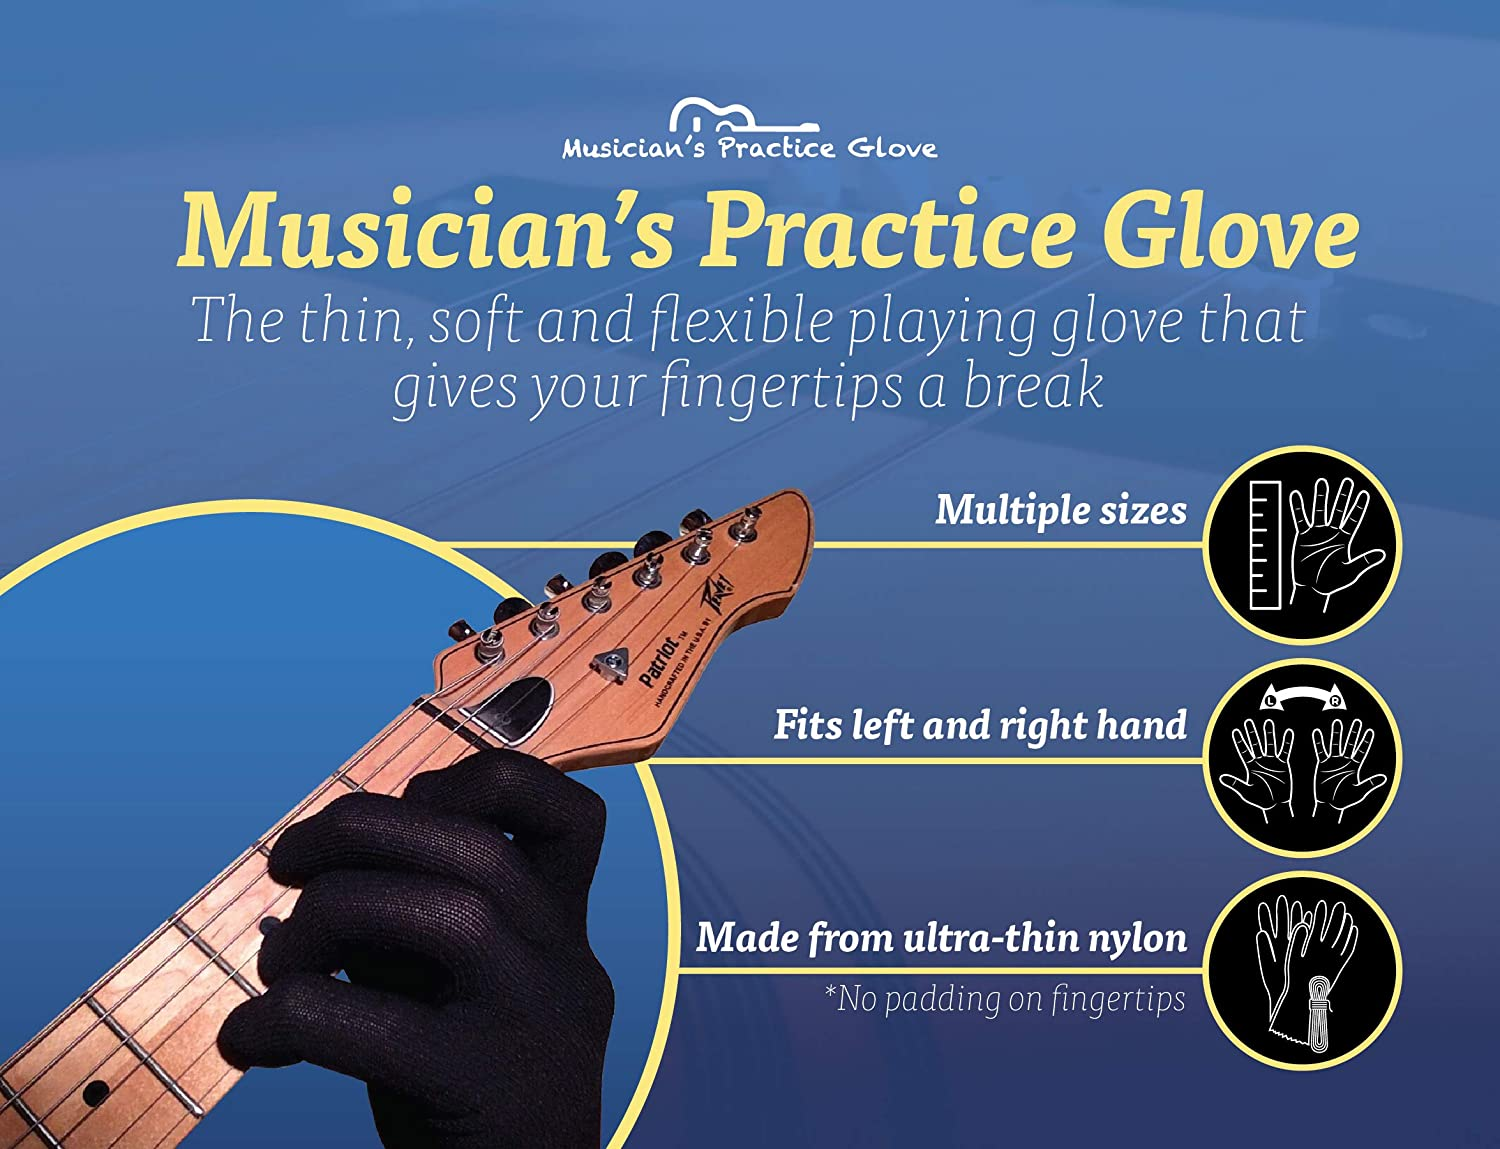 Blisters Sore Fingertips Continue Guitar Practice with Cuts S- Includes 1 Guitar Glove Perfect for Professional and Beginner Musicians Guitar Glove for Fingertips by Musician Practice Glove